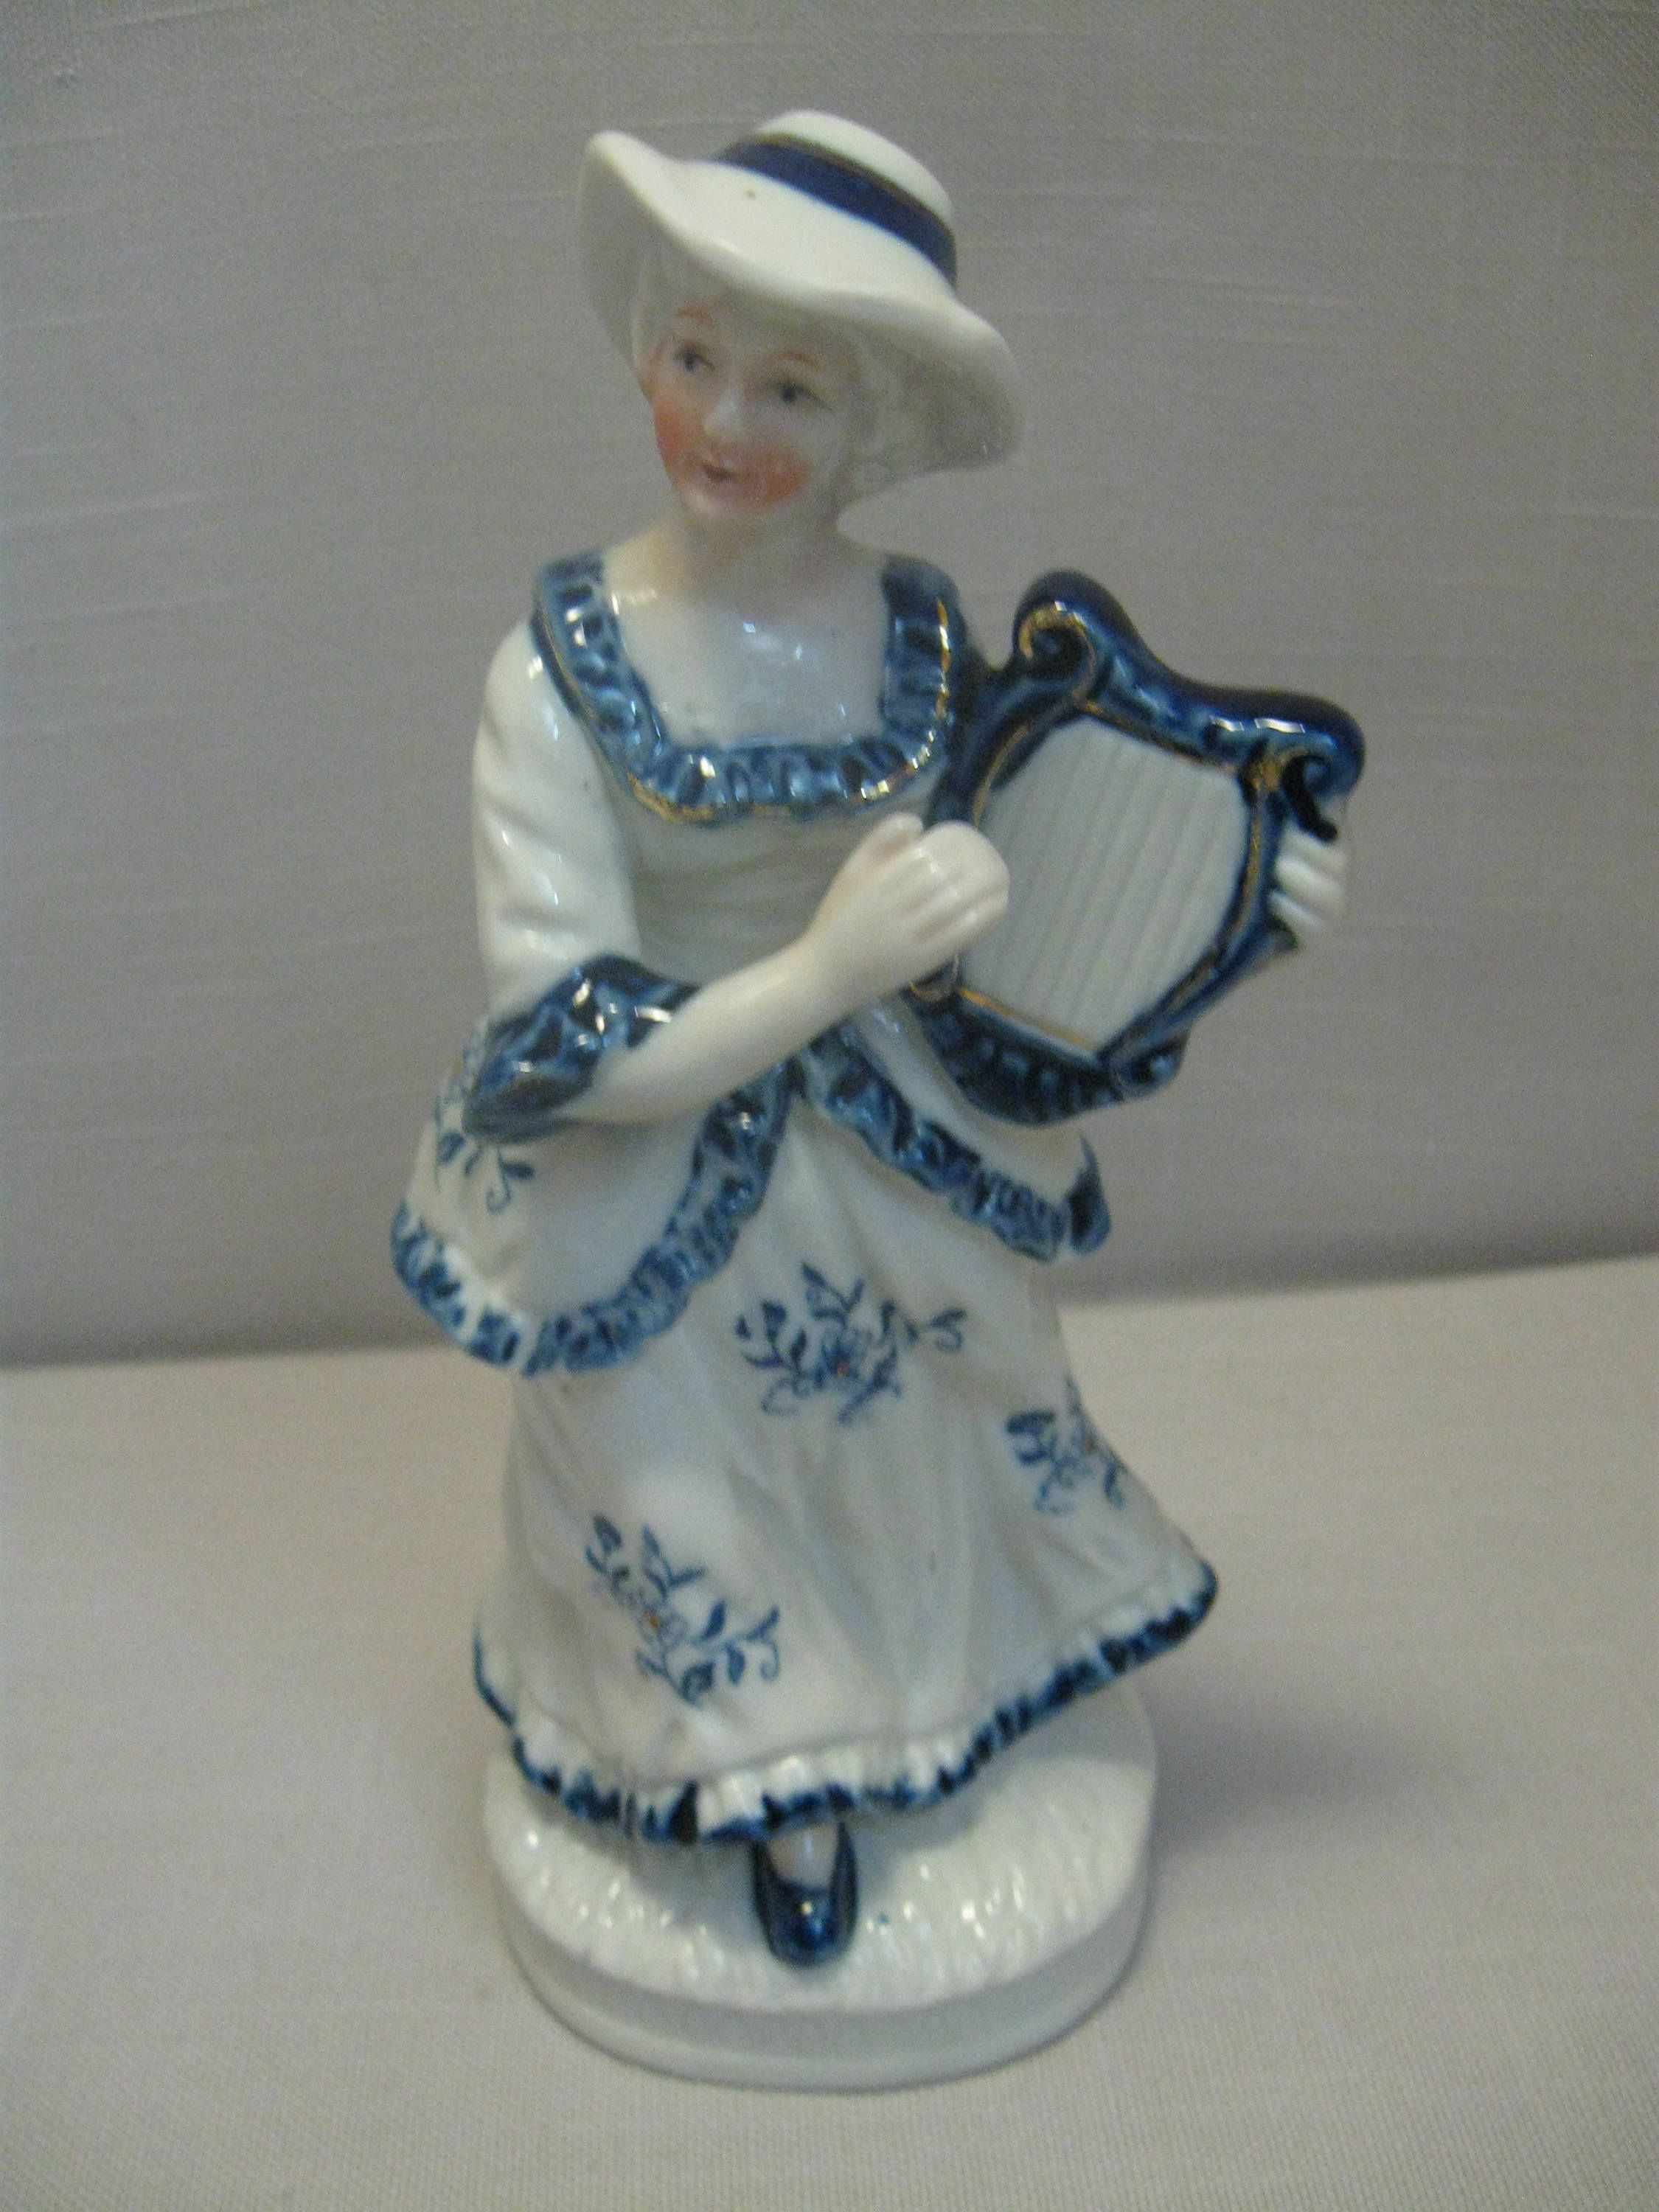 ucagco china vase of victorian figurine blue flower pattern on white gold trim dress lady pertaining to victorian figurine blue flower pattern on white gold trim dress lady playing harp by nancysantiques on etsy